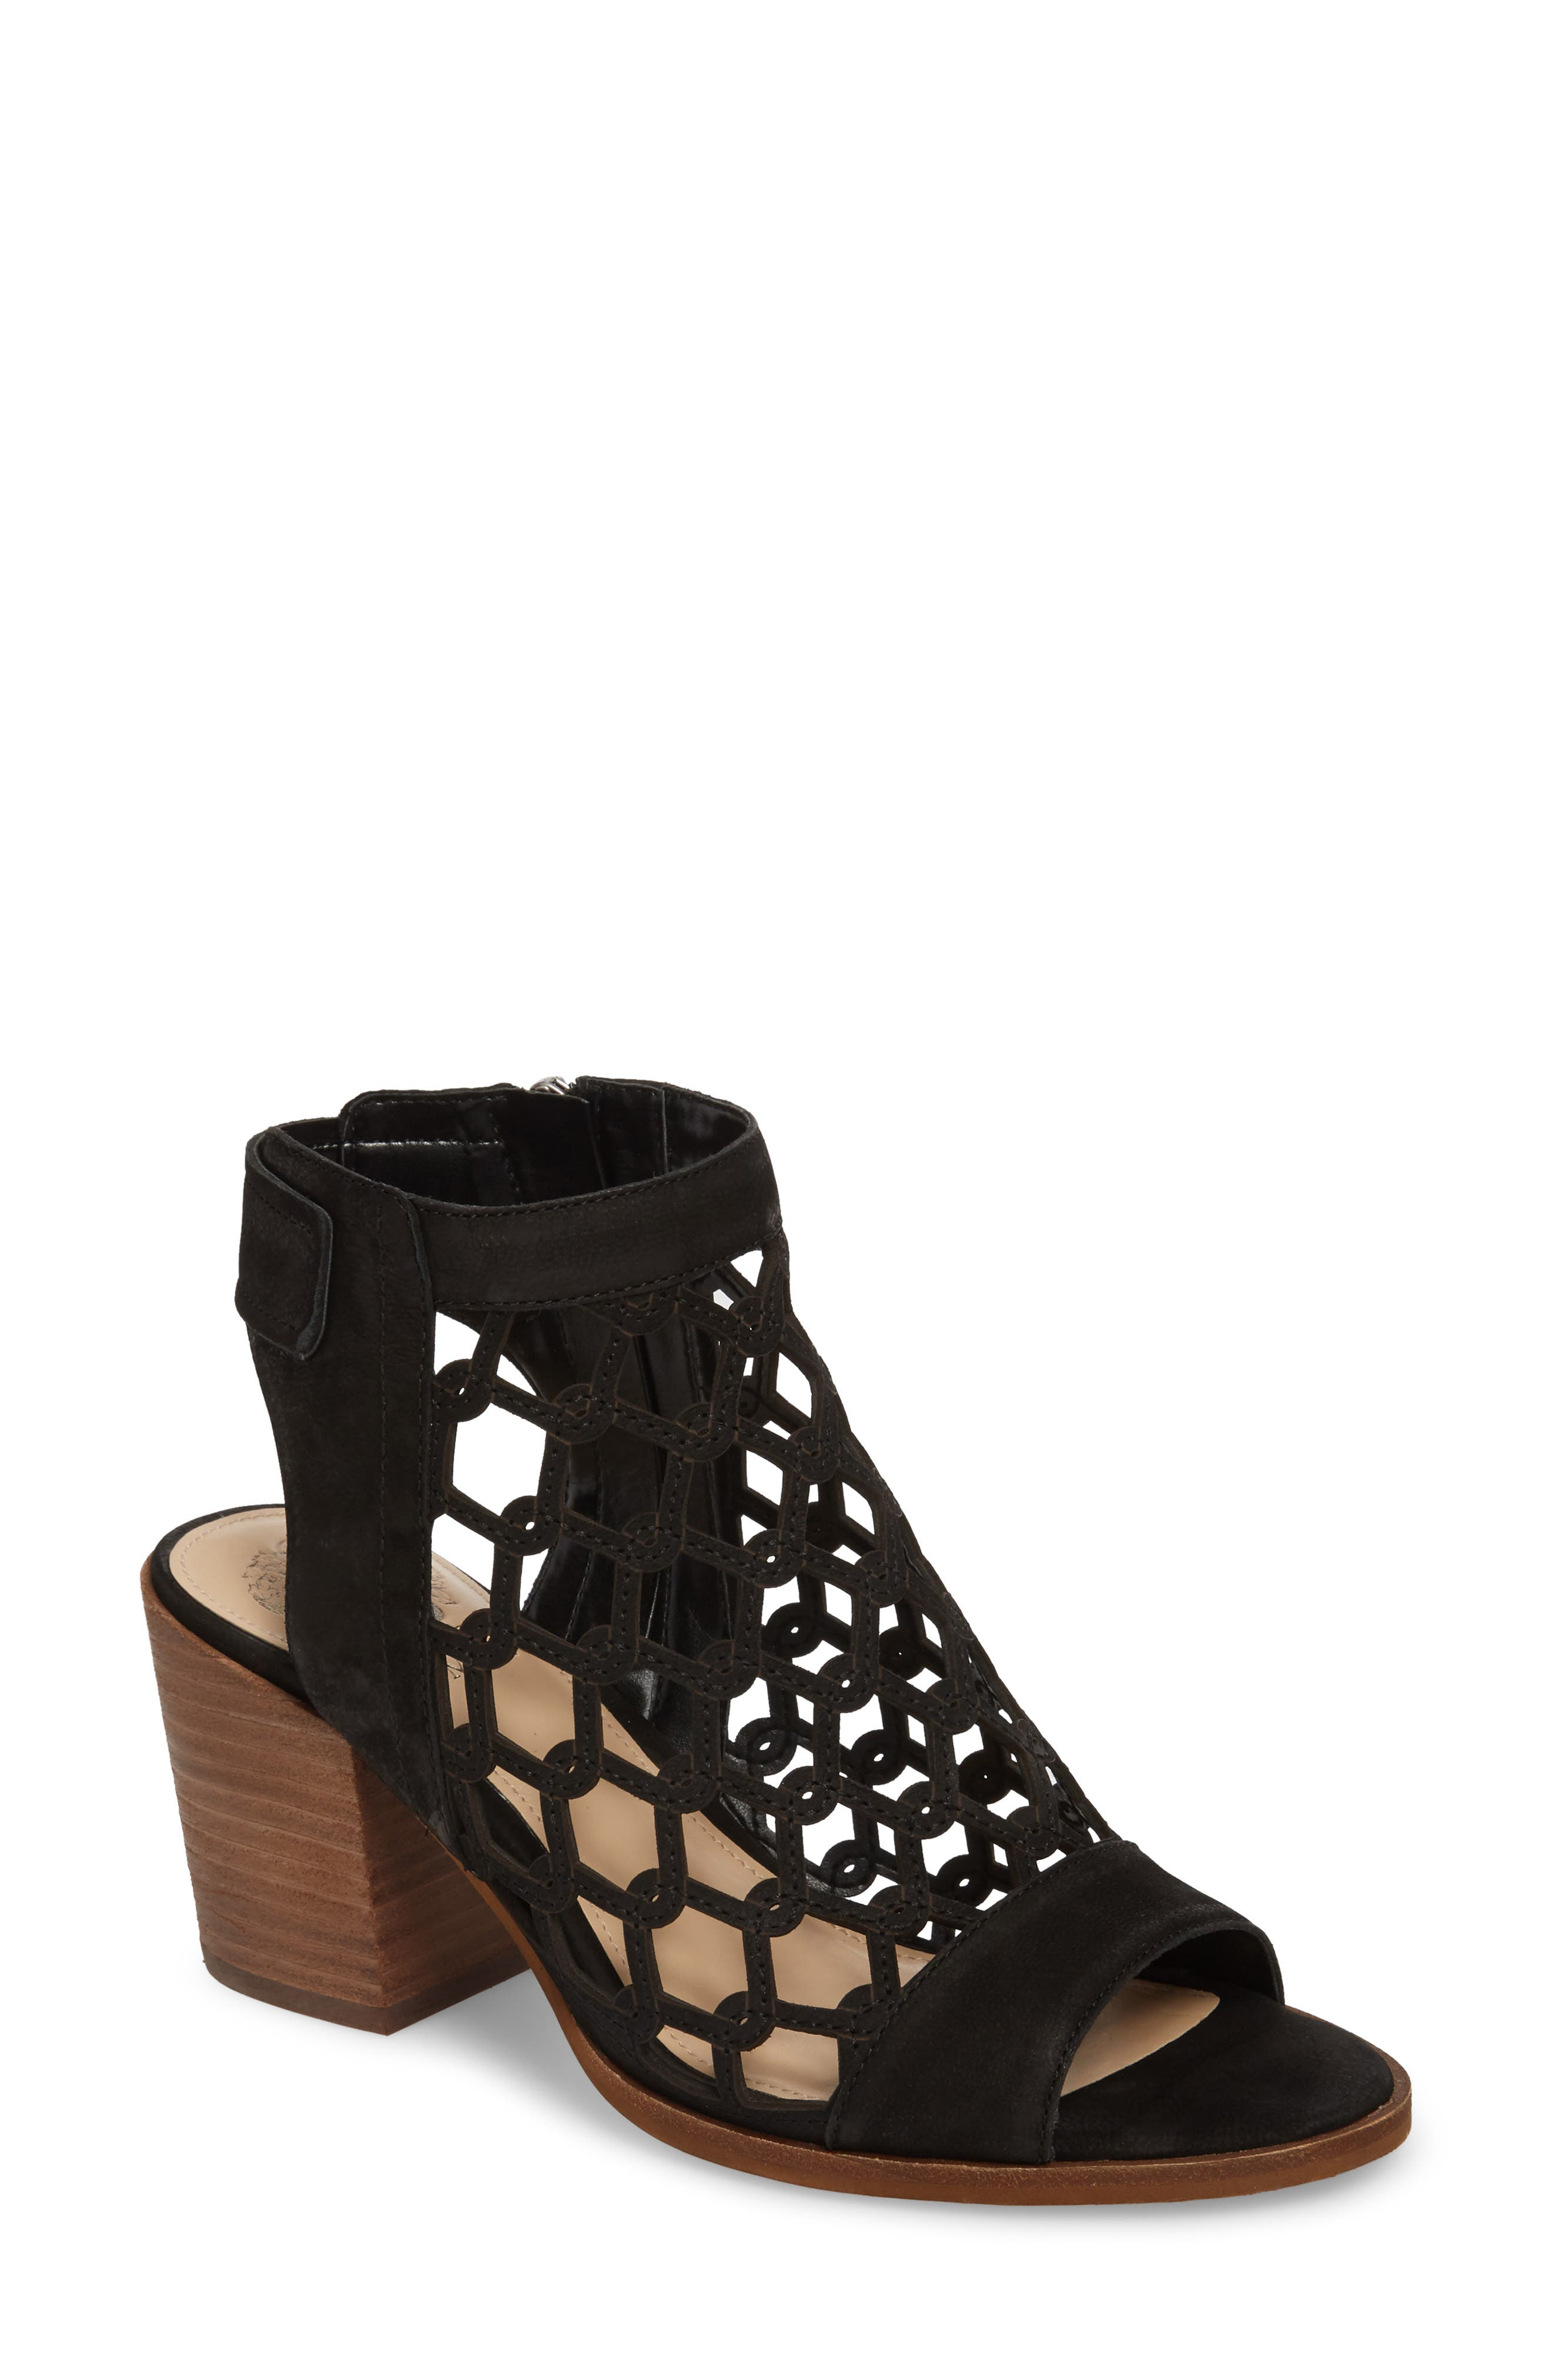 VINCE CAMUTO Lanaira Sandal, Main, color, BLACK LEATHER